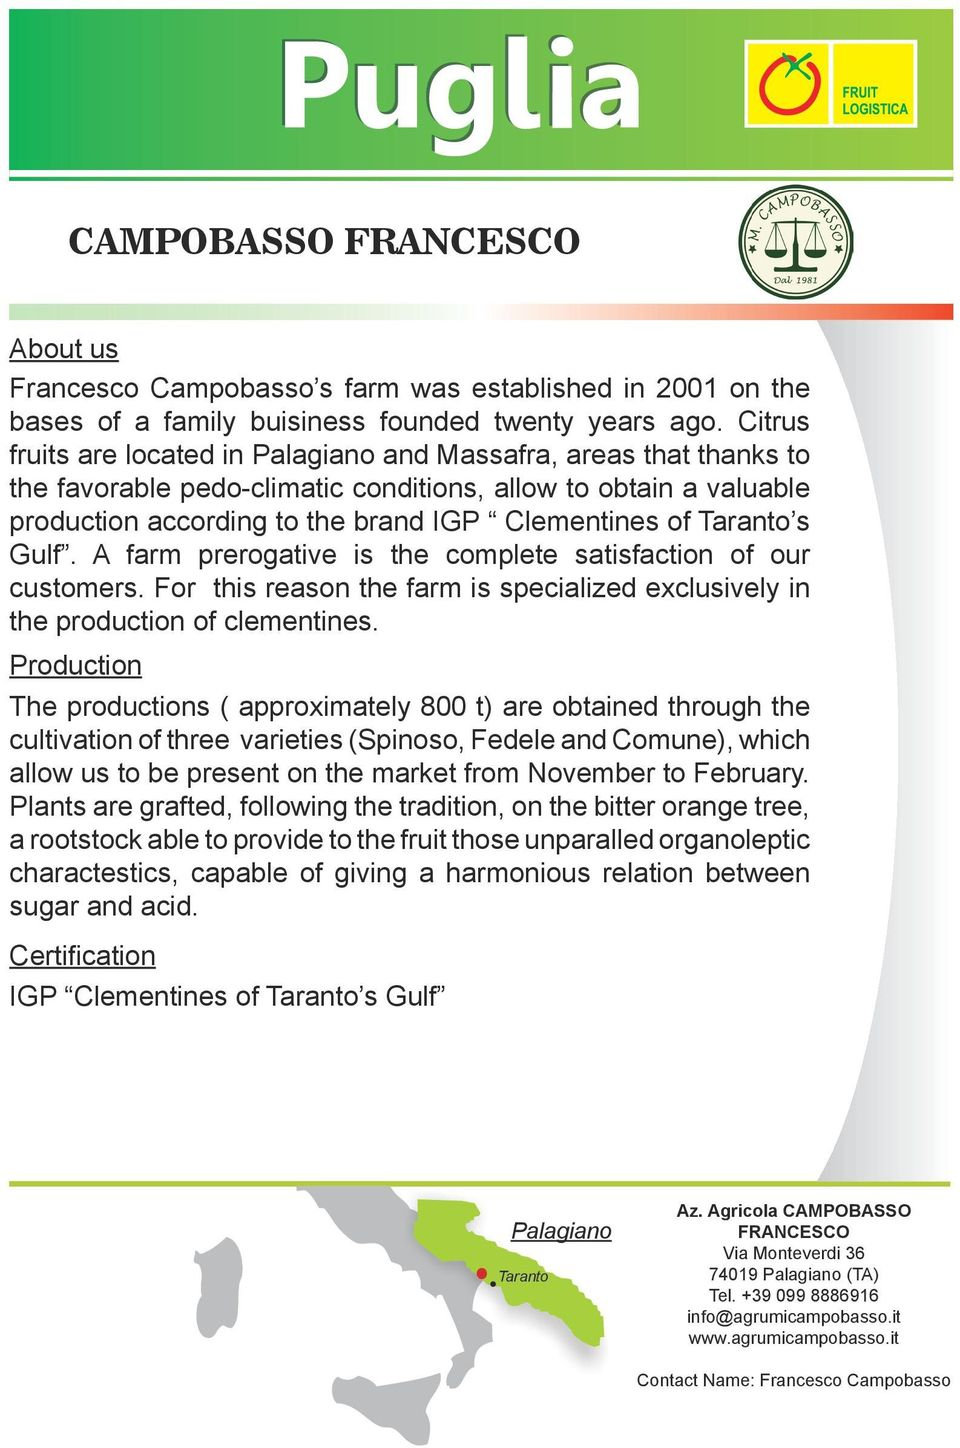 Taranto s Gulf. A farm prerogative is the complete satisfaction of our customers. For this reason the farm is specialized exclusively in the production of clementines.